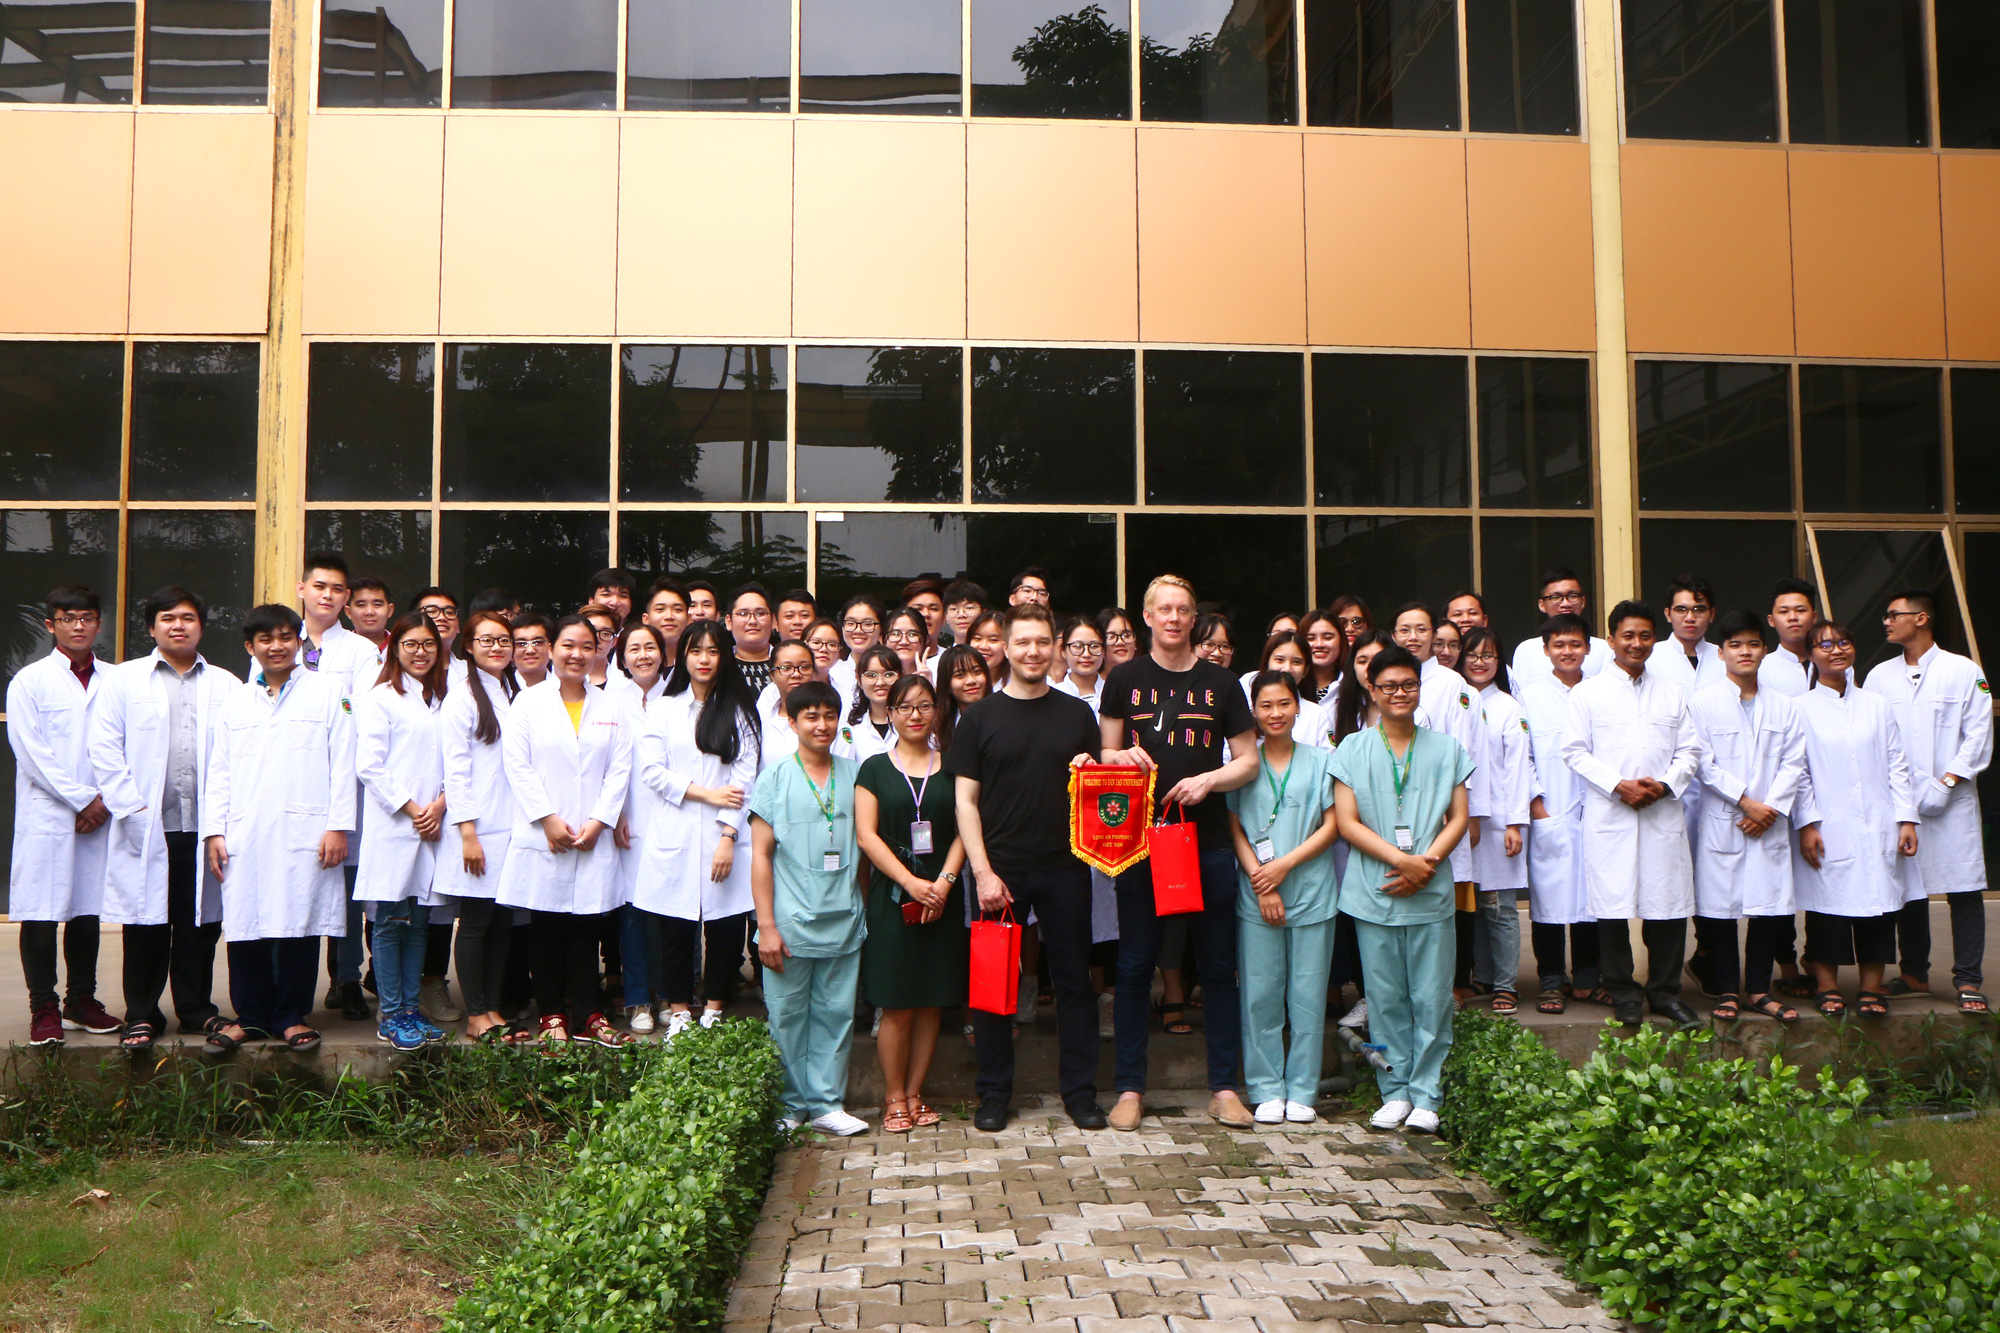 Students of Tan Tao University pose for a photo with U.S. experts in nursing. Photo: Ban Mai / Tuoi Tre